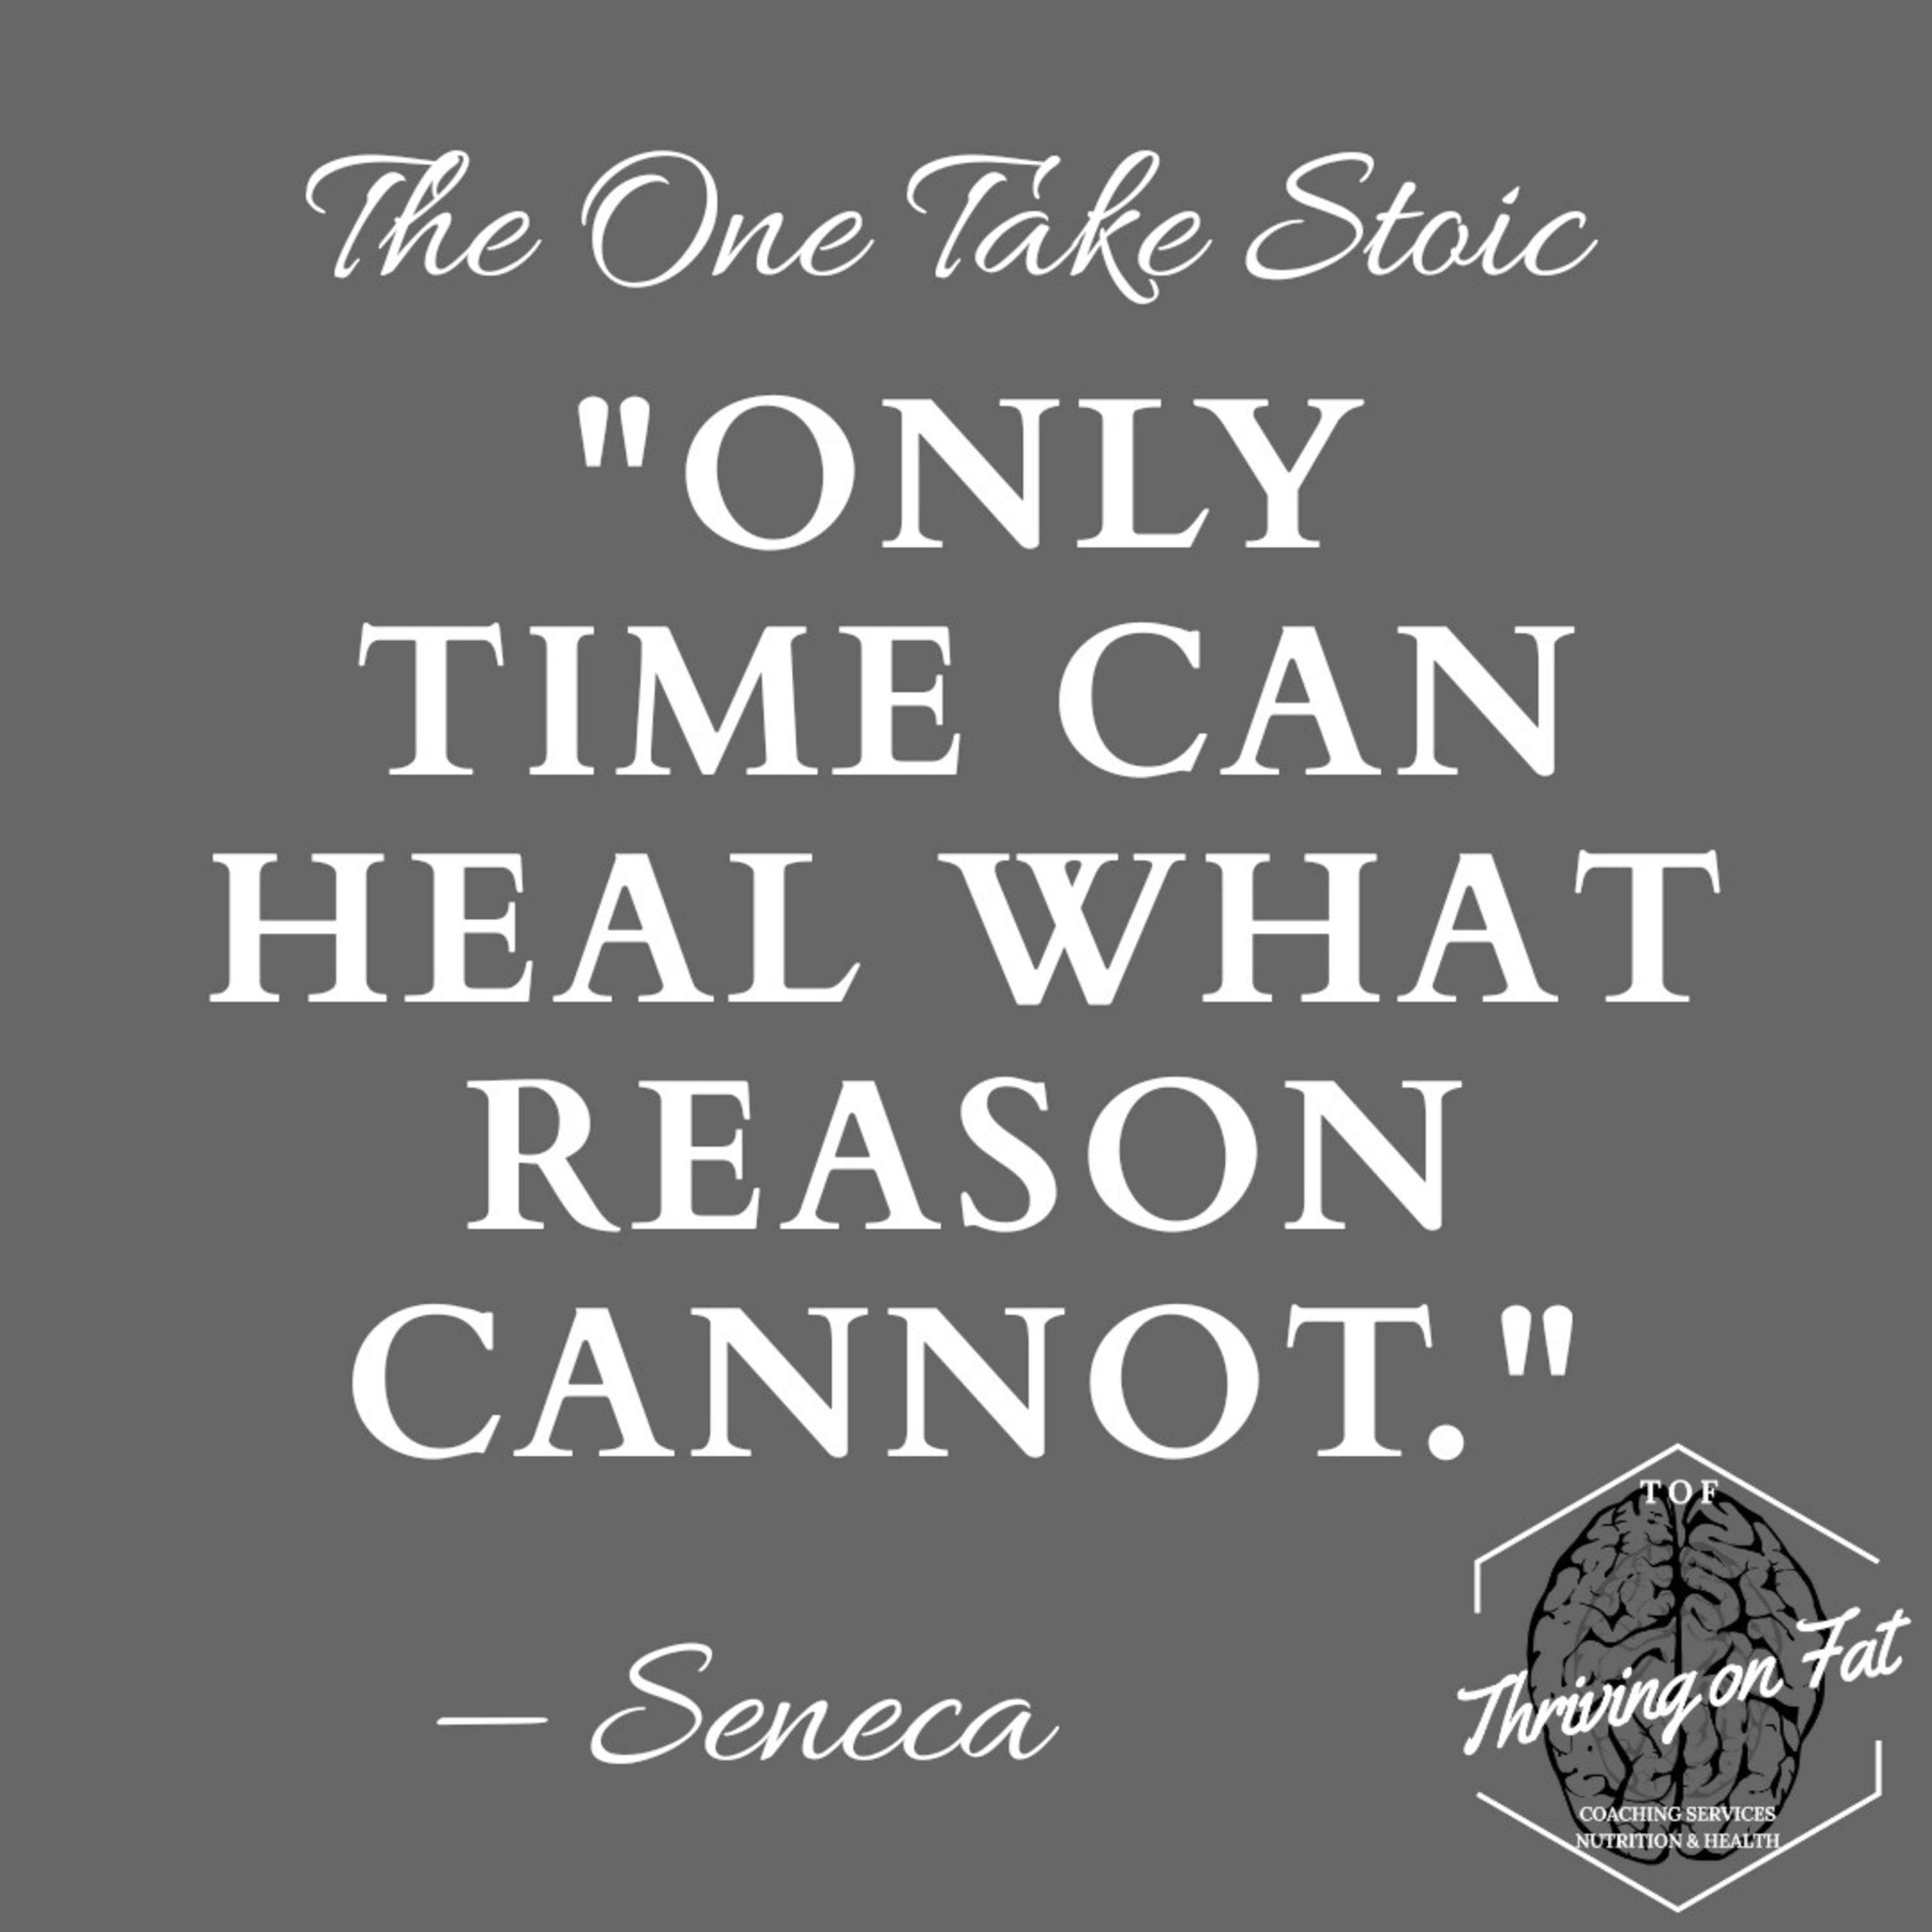 175: Time heals all wounds